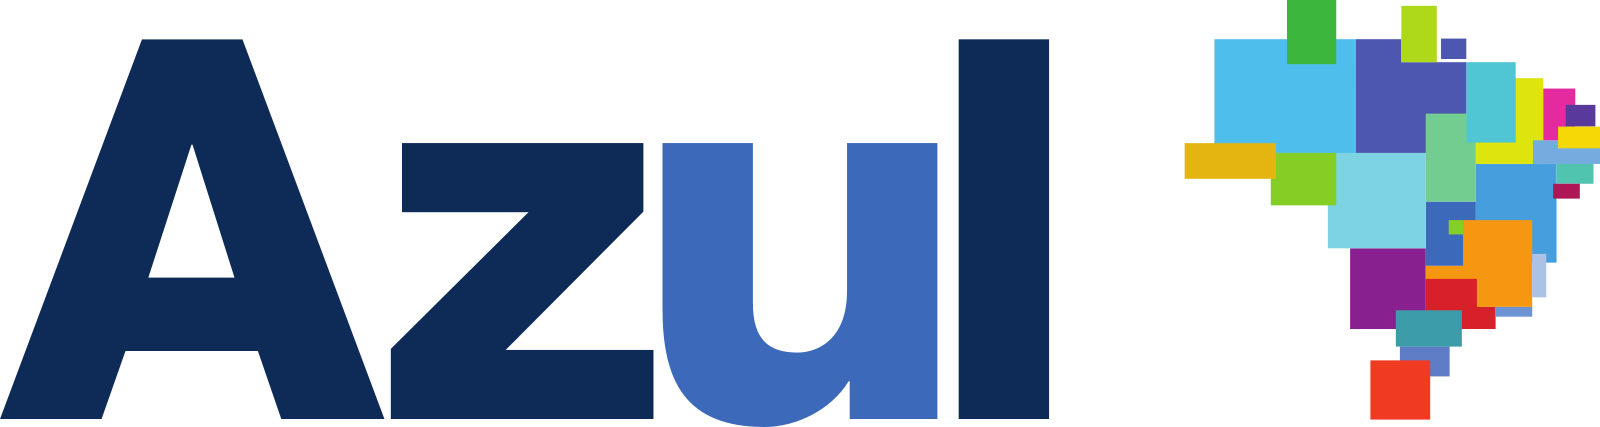 azul-airlines-logo-02